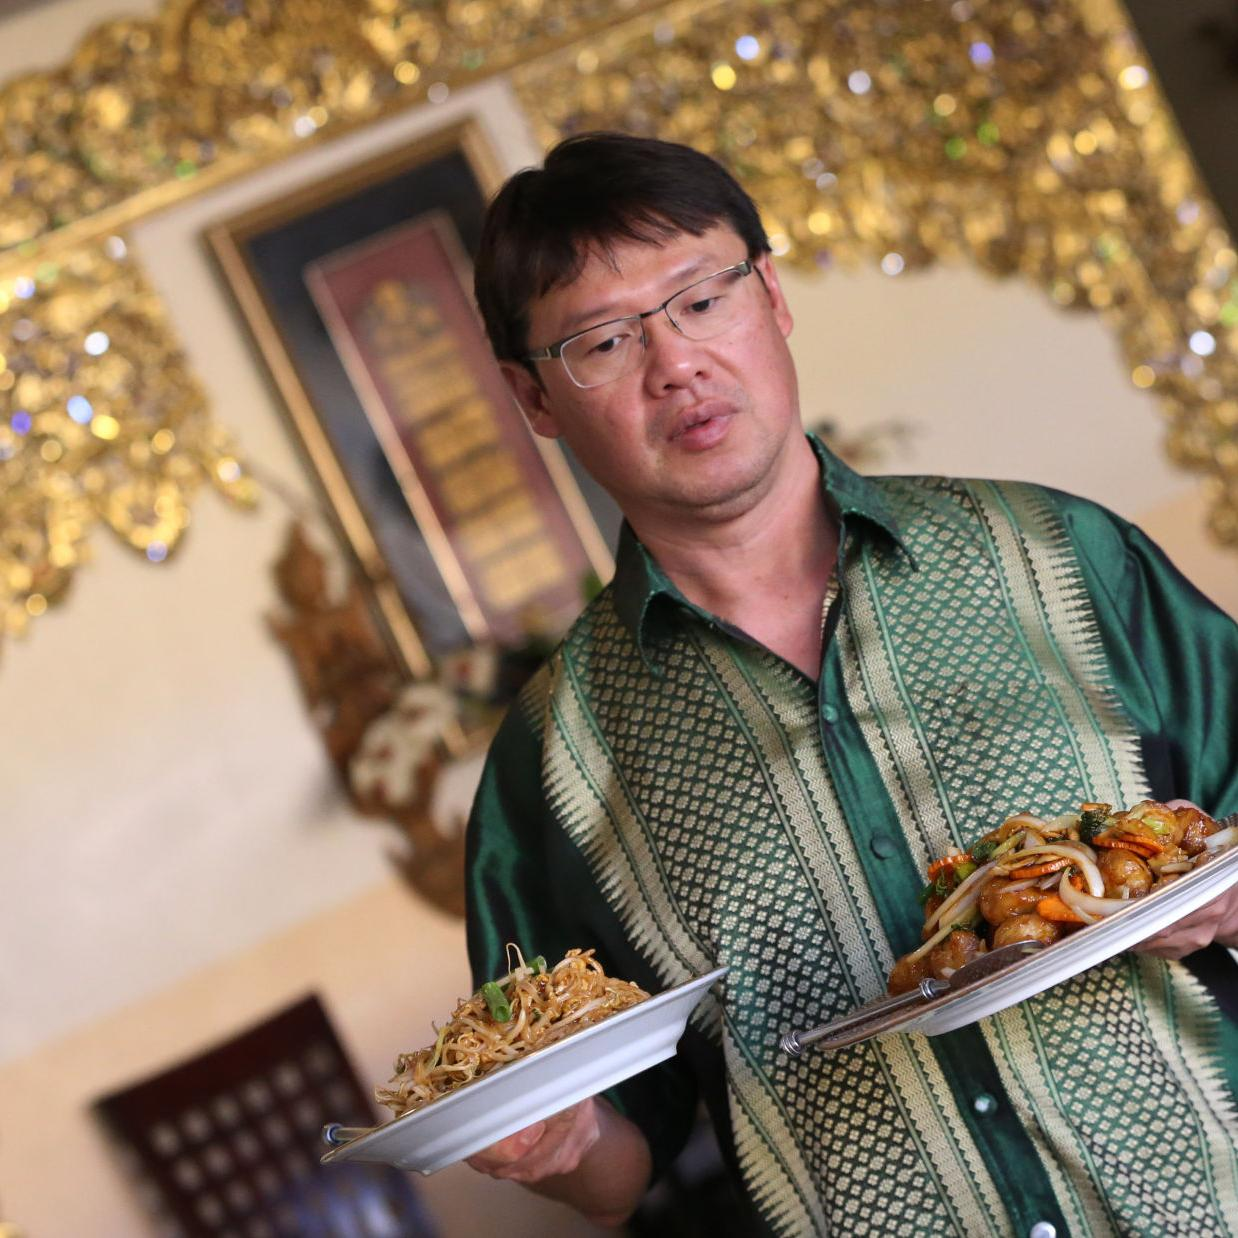 Pete Tittl Curry Favor By Recommending Thai Kitchen Food